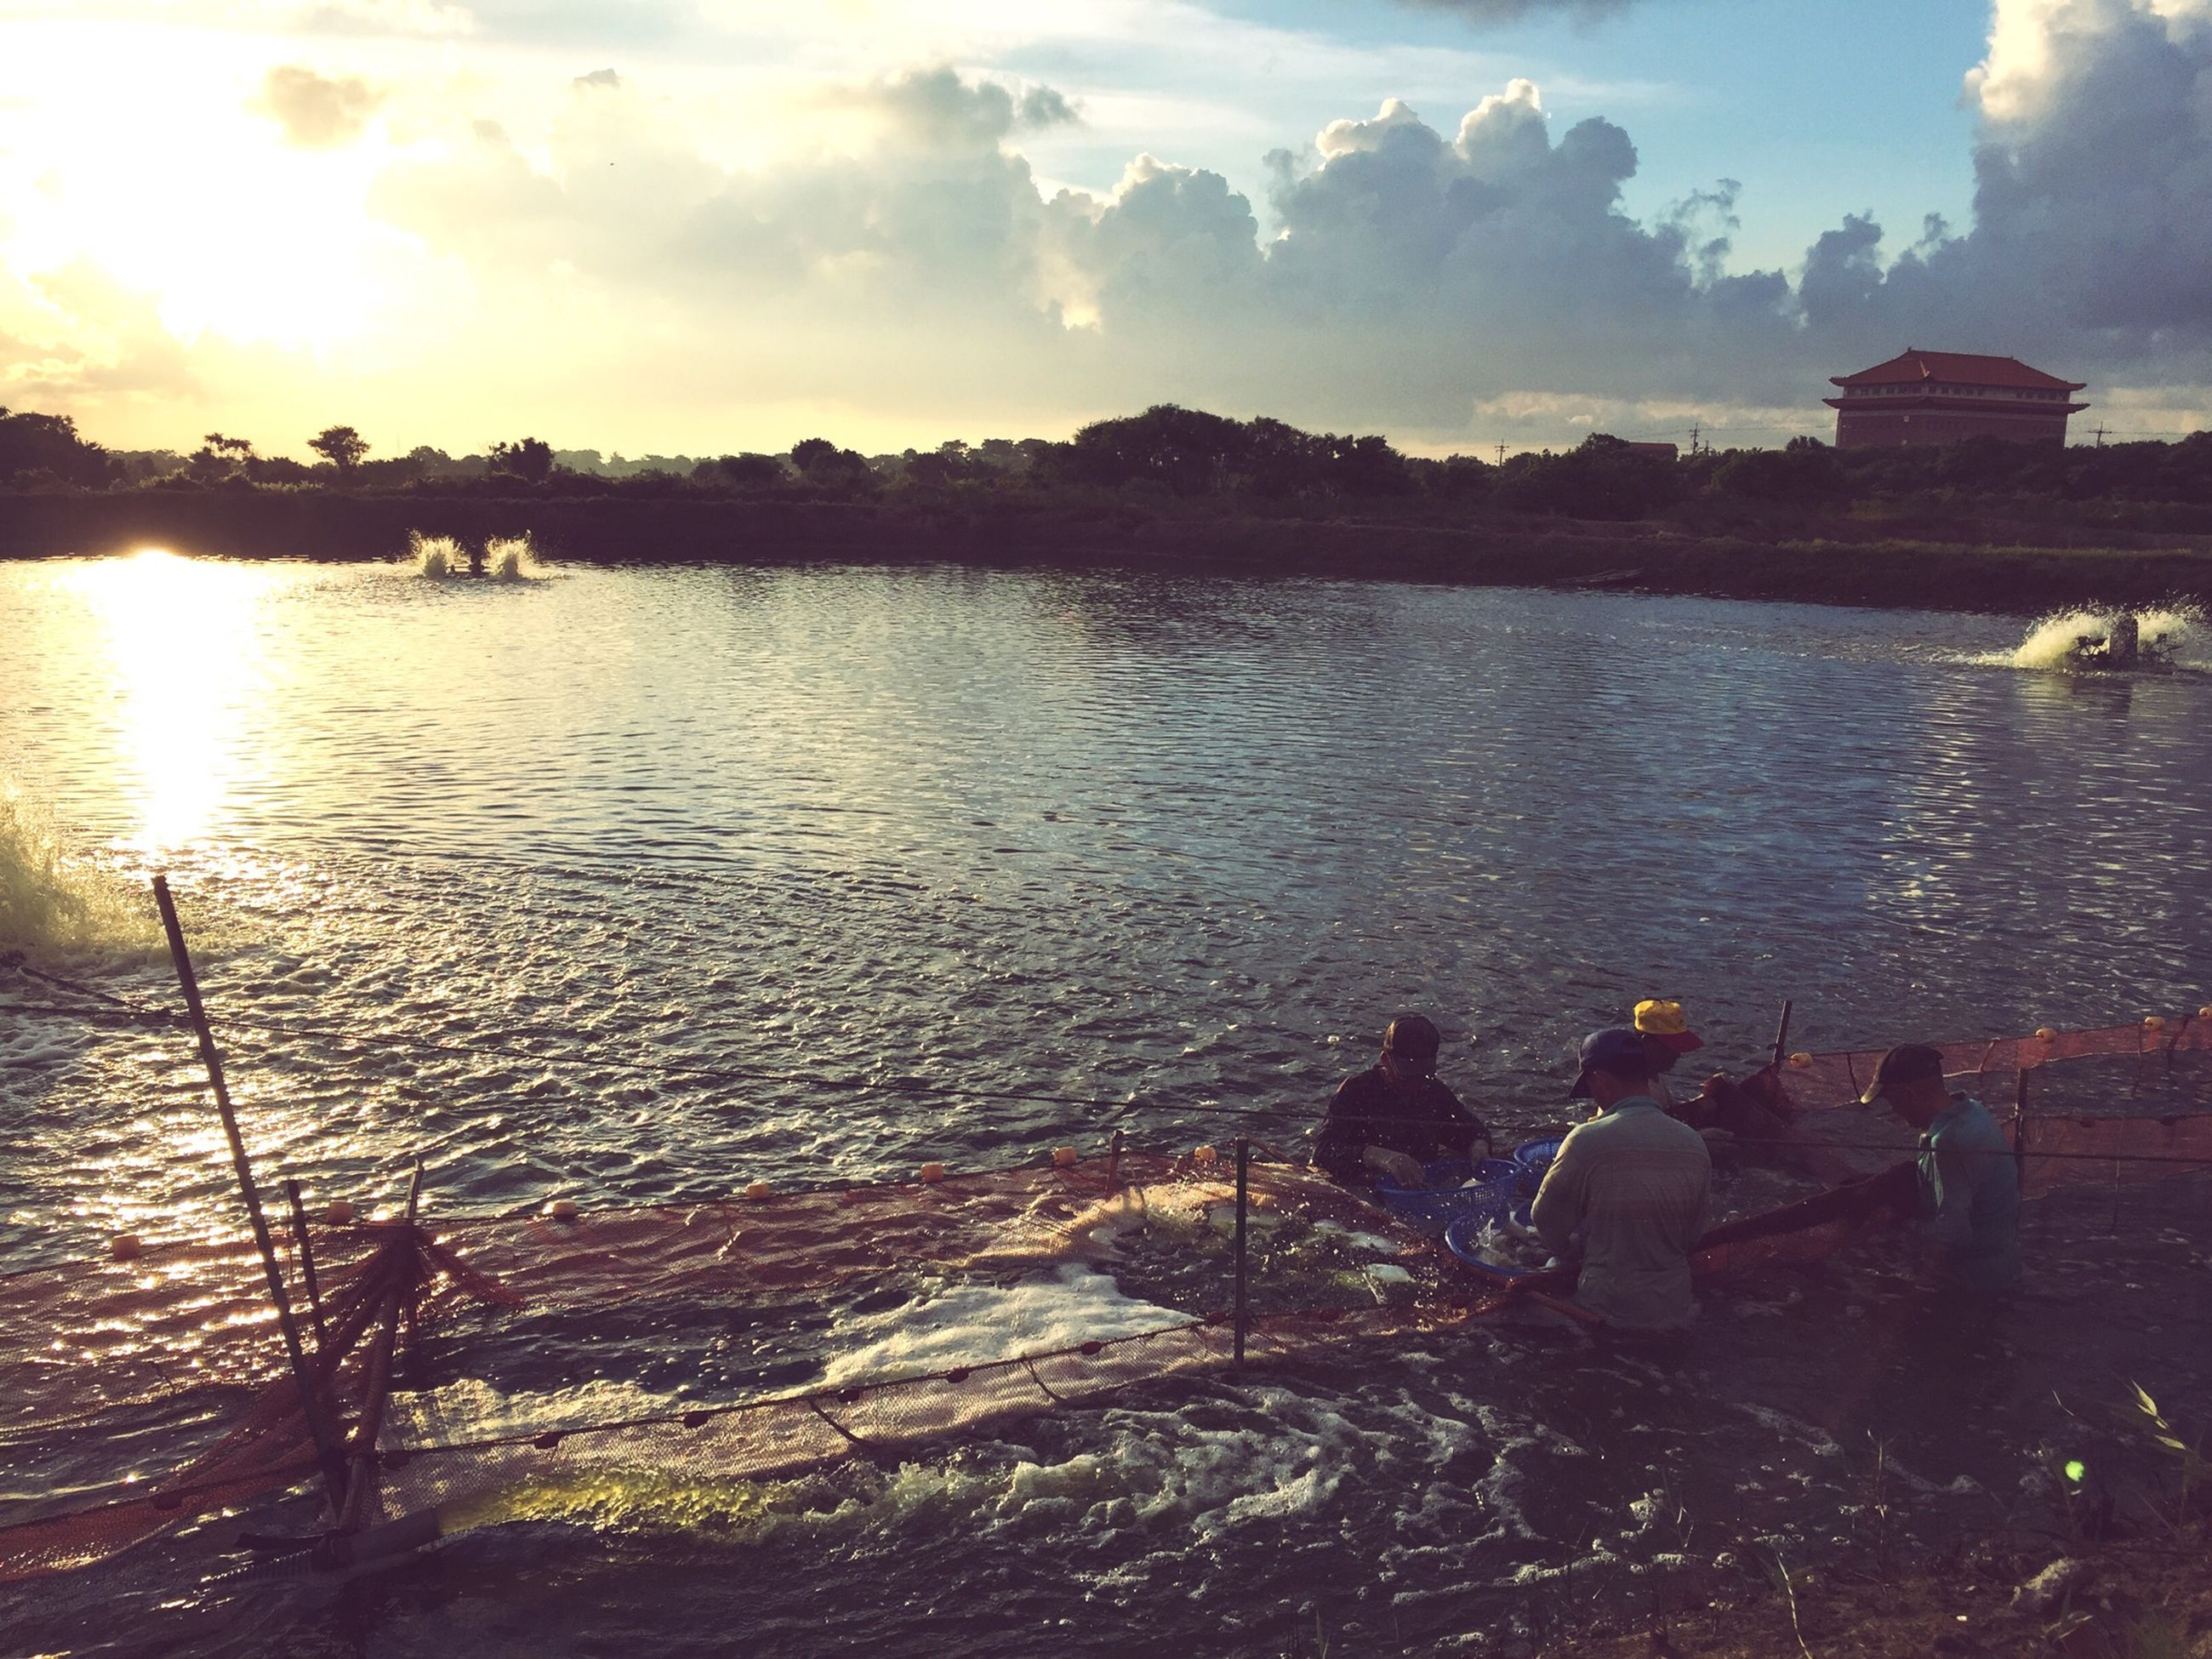 water, sky, lifestyles, leisure activity, sun, sunlight, sunset, reflection, men, cloud - sky, sea, sunbeam, nature, person, river, lake, beauty in nature, scenics, tranquility